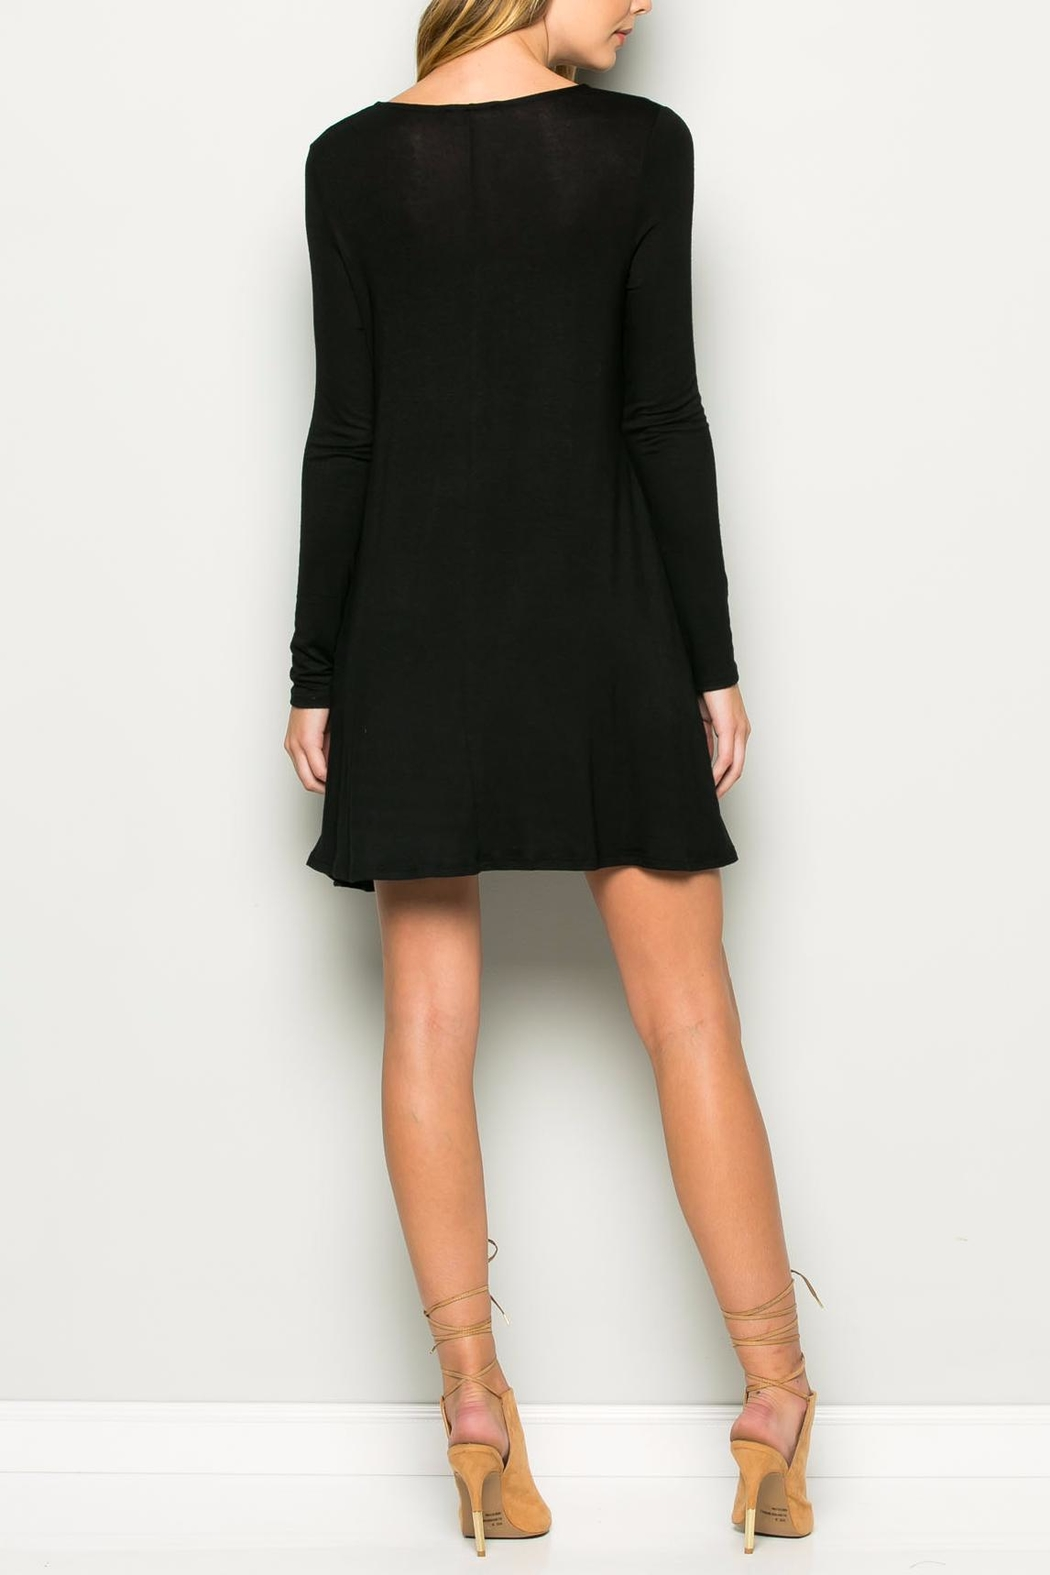 Wasabi + Mint Black A line Dress - Side Cropped Image